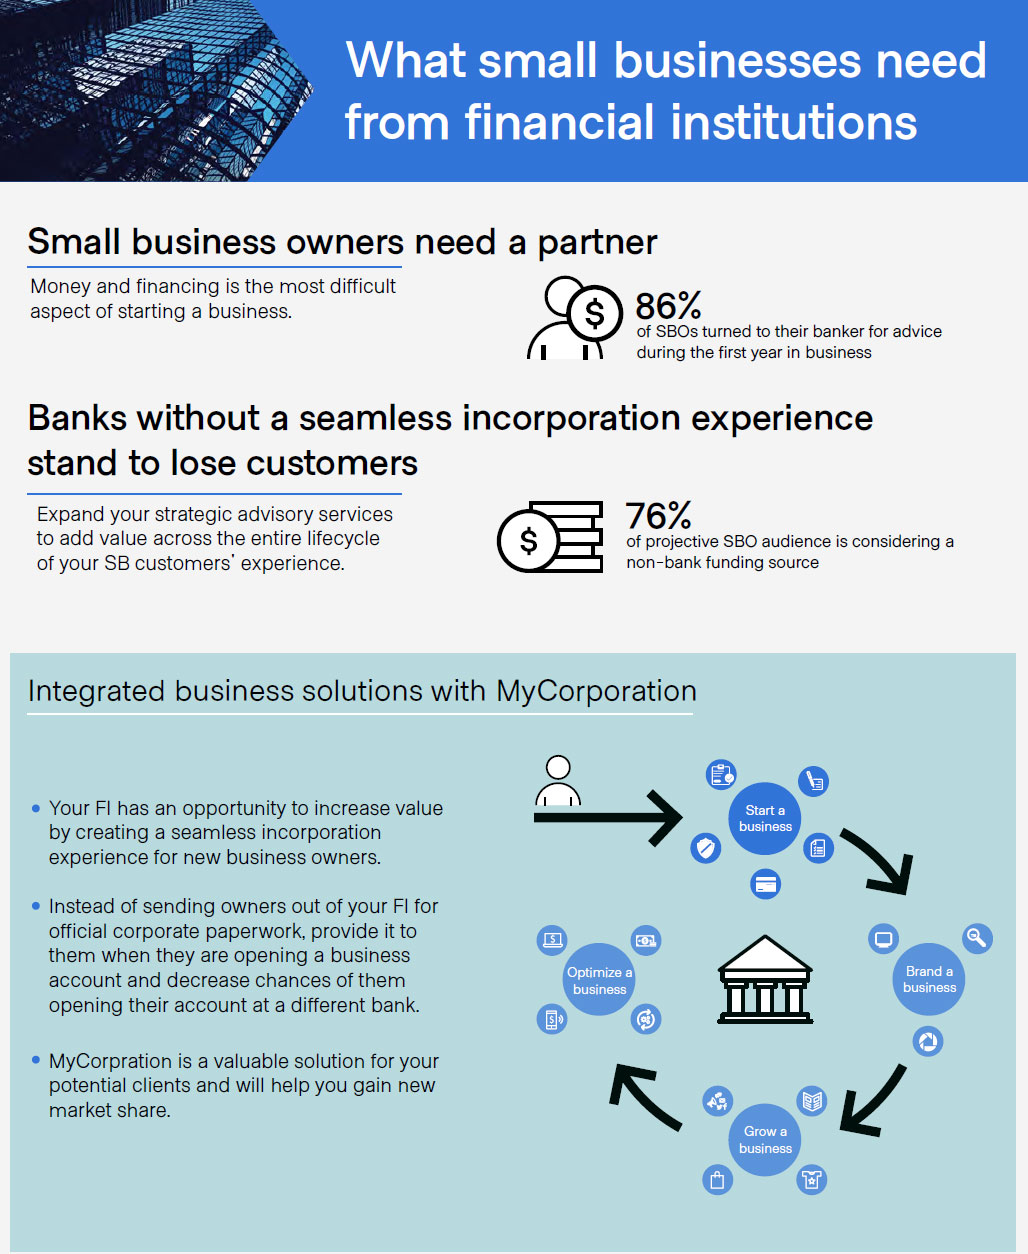 What small businesses need from financial institutions